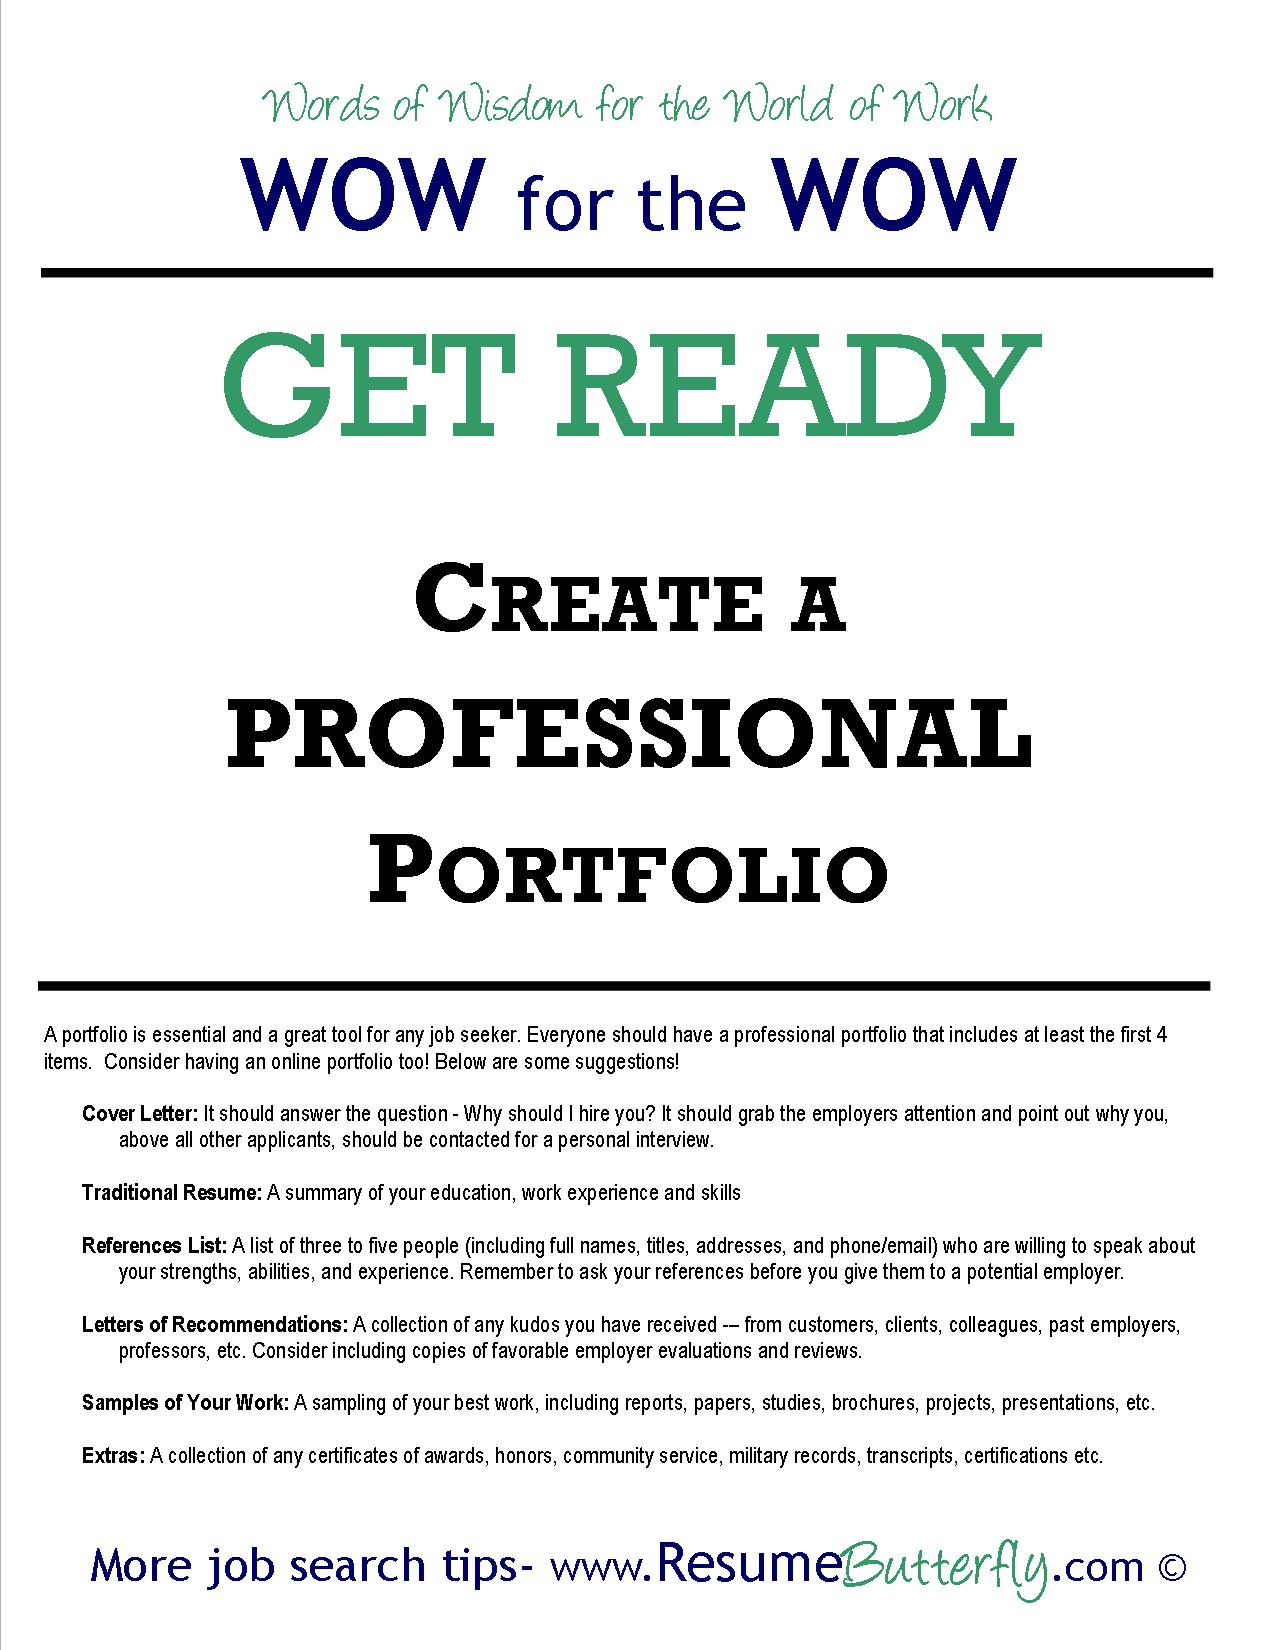 how to create a professional job search portfolio resume butterfly job search portfolio job search skills resume butterfly get ready professional portfolio